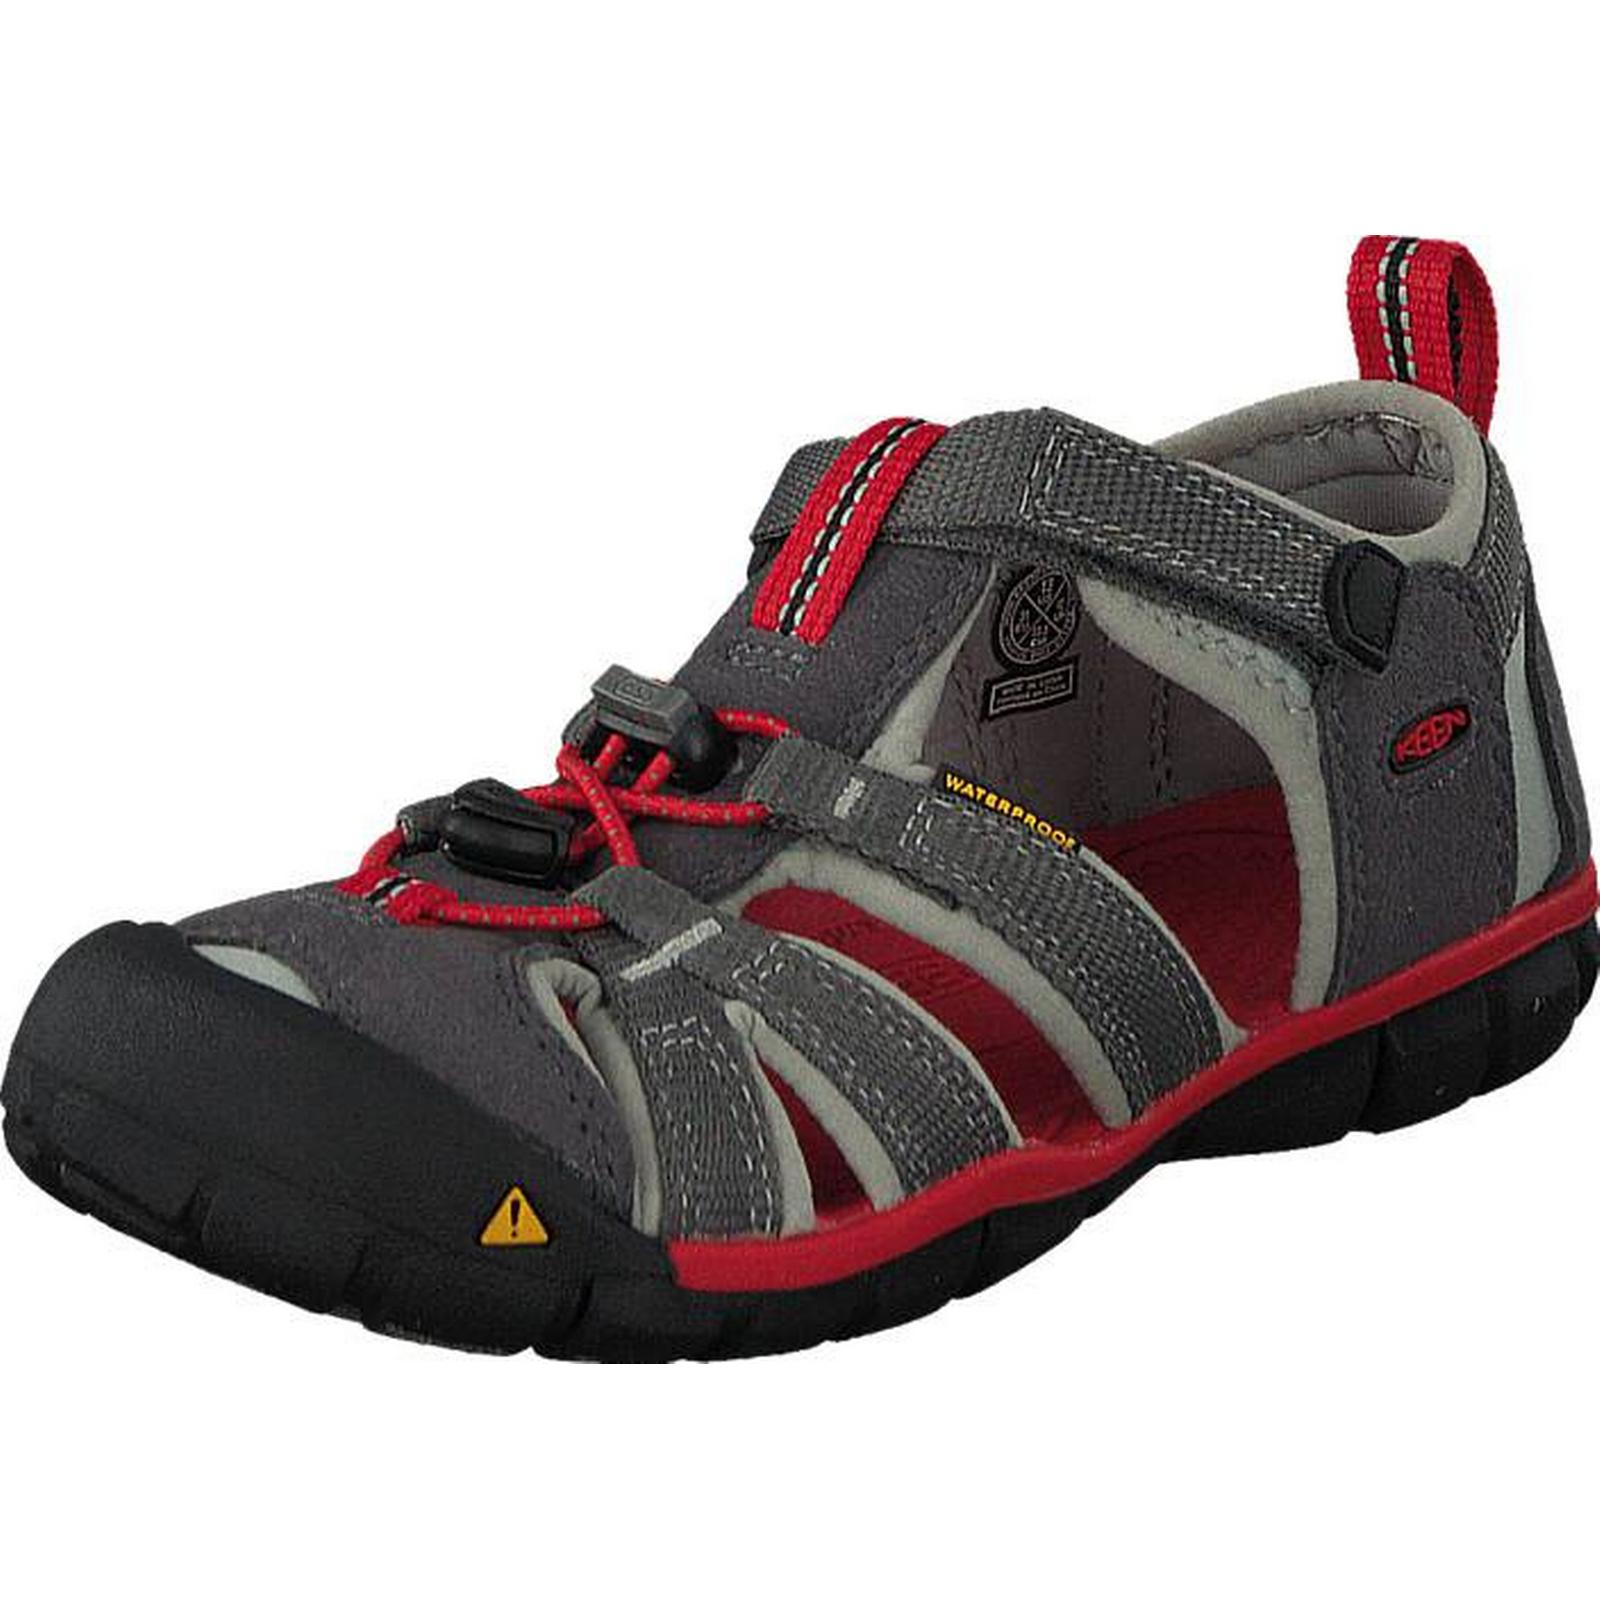 Keen Seacamp Ii Cnx-Kids Magnet/Racing Red, Shoes, Sandals & Sports Slippers, Sports & Sandals, Purple, Unisex, 24 c7aea6